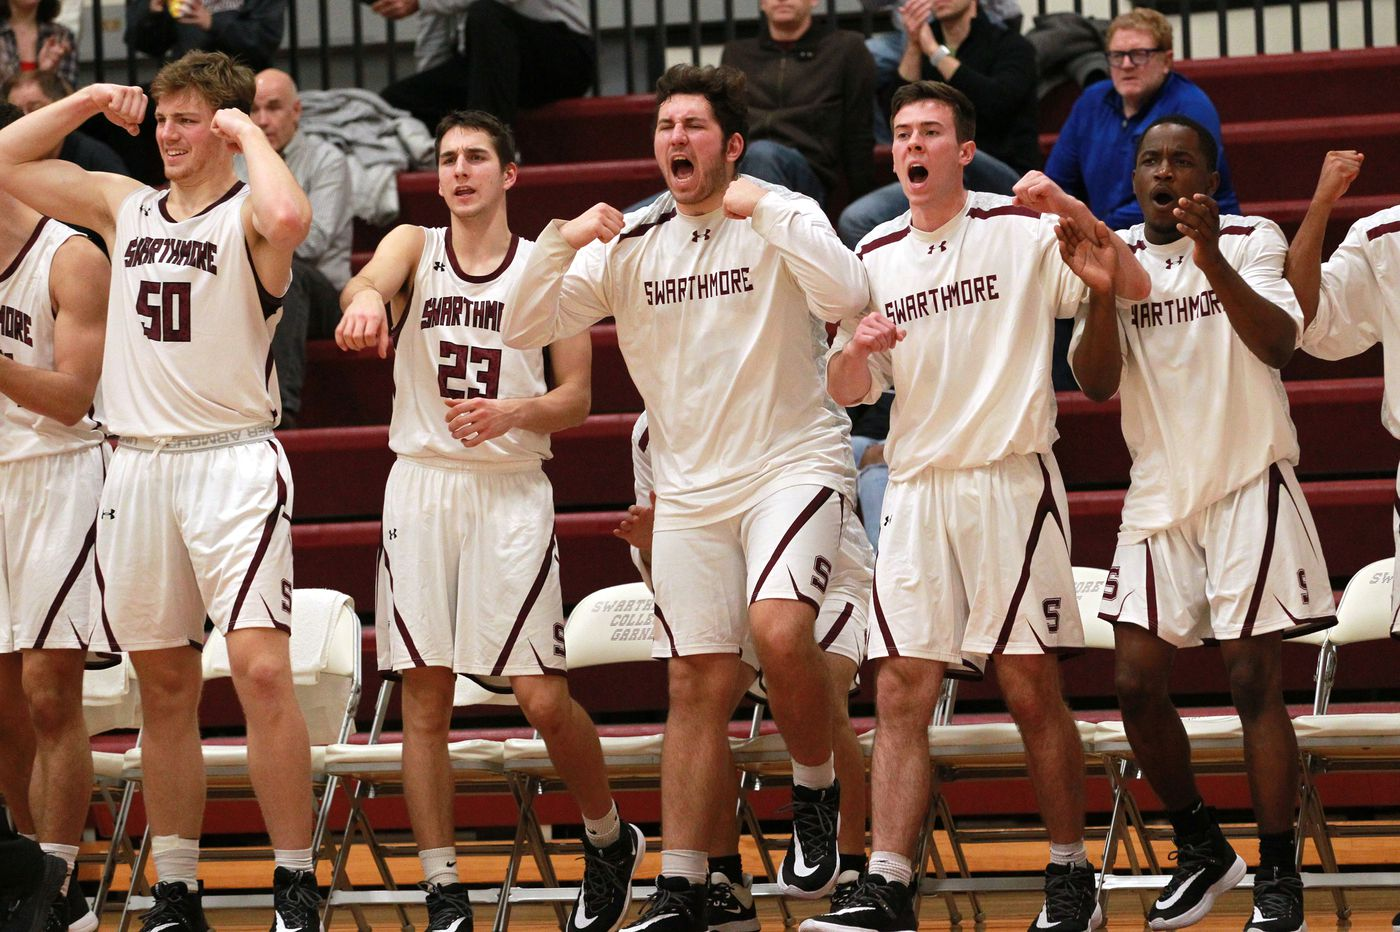 It's just nuts: Swarthmore basketball team No. 1 in country in Division III | Mike Jensen